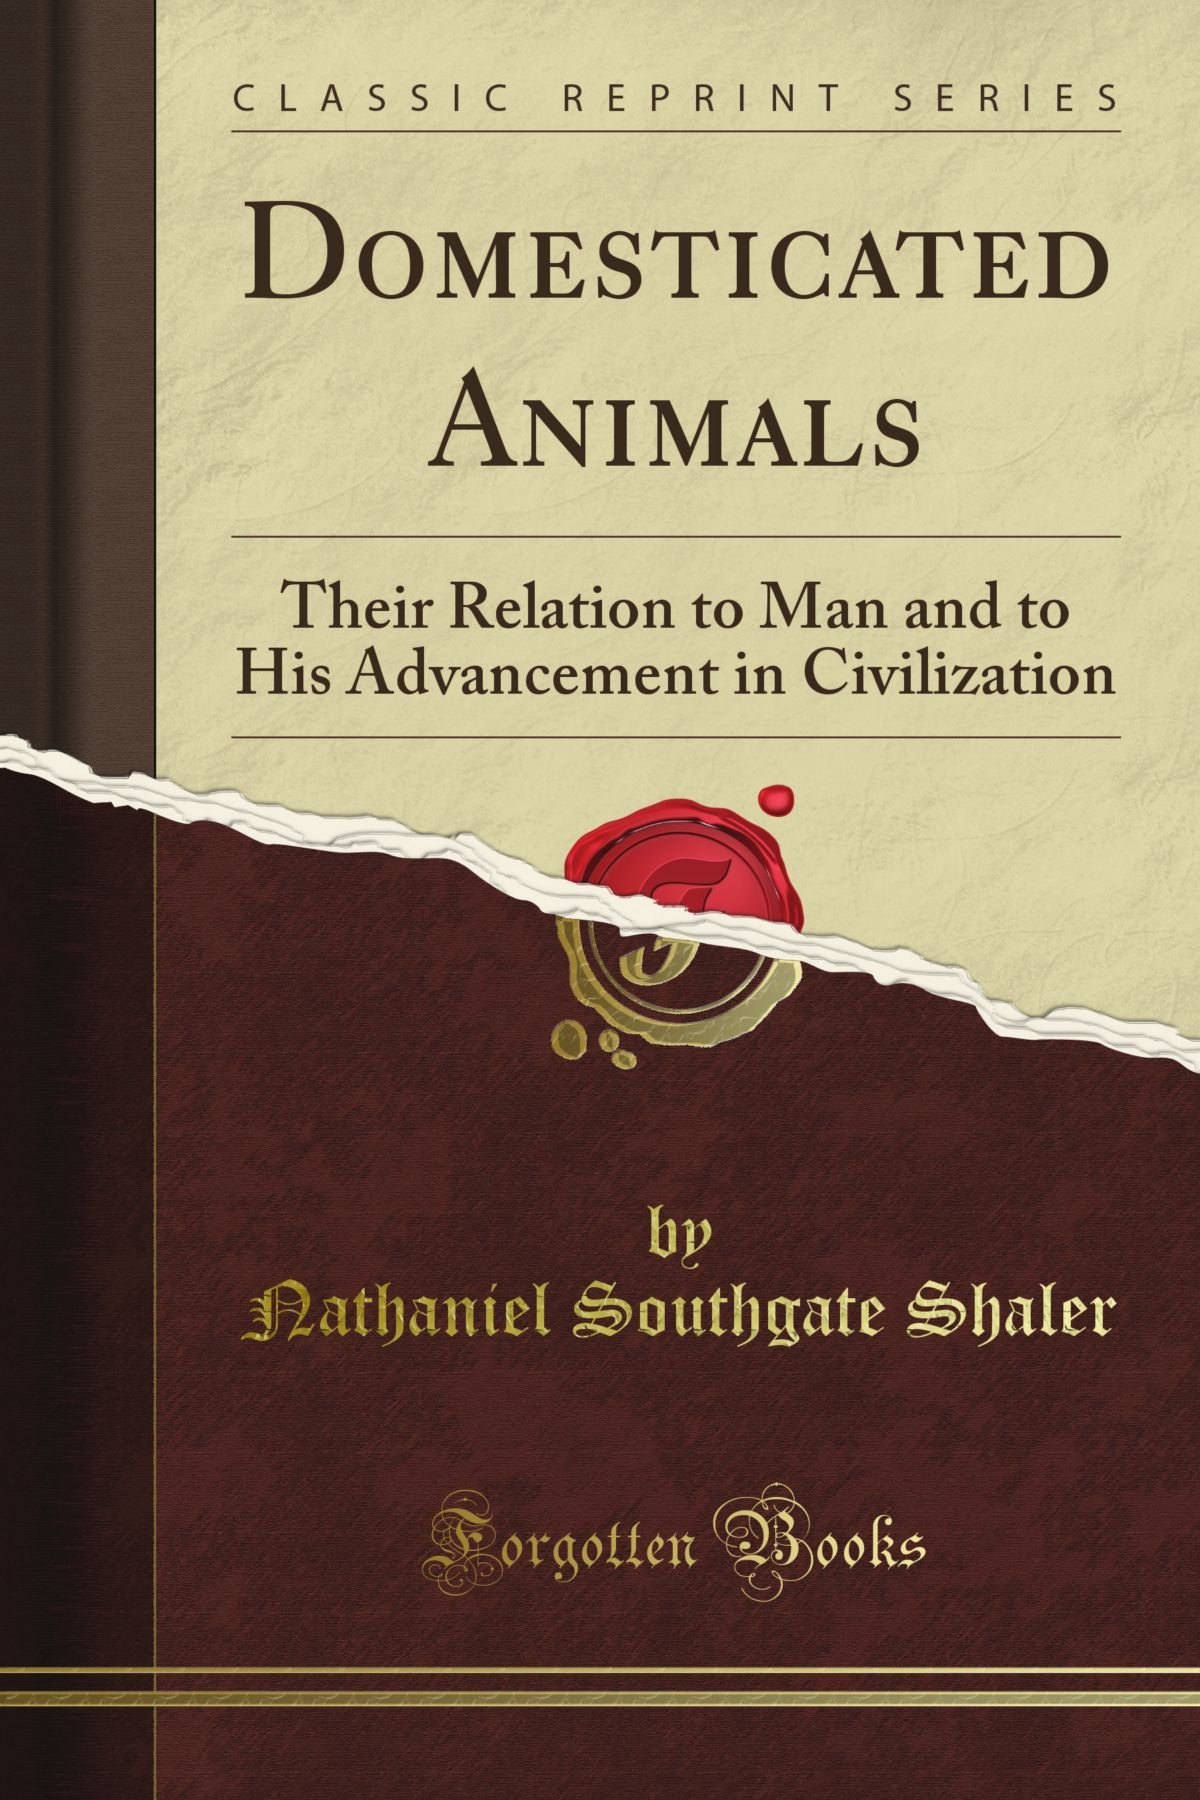 Download Domesticated Animals Their Relation to Man and to His, Advancement in Civilization (Classic Reprint) ebook